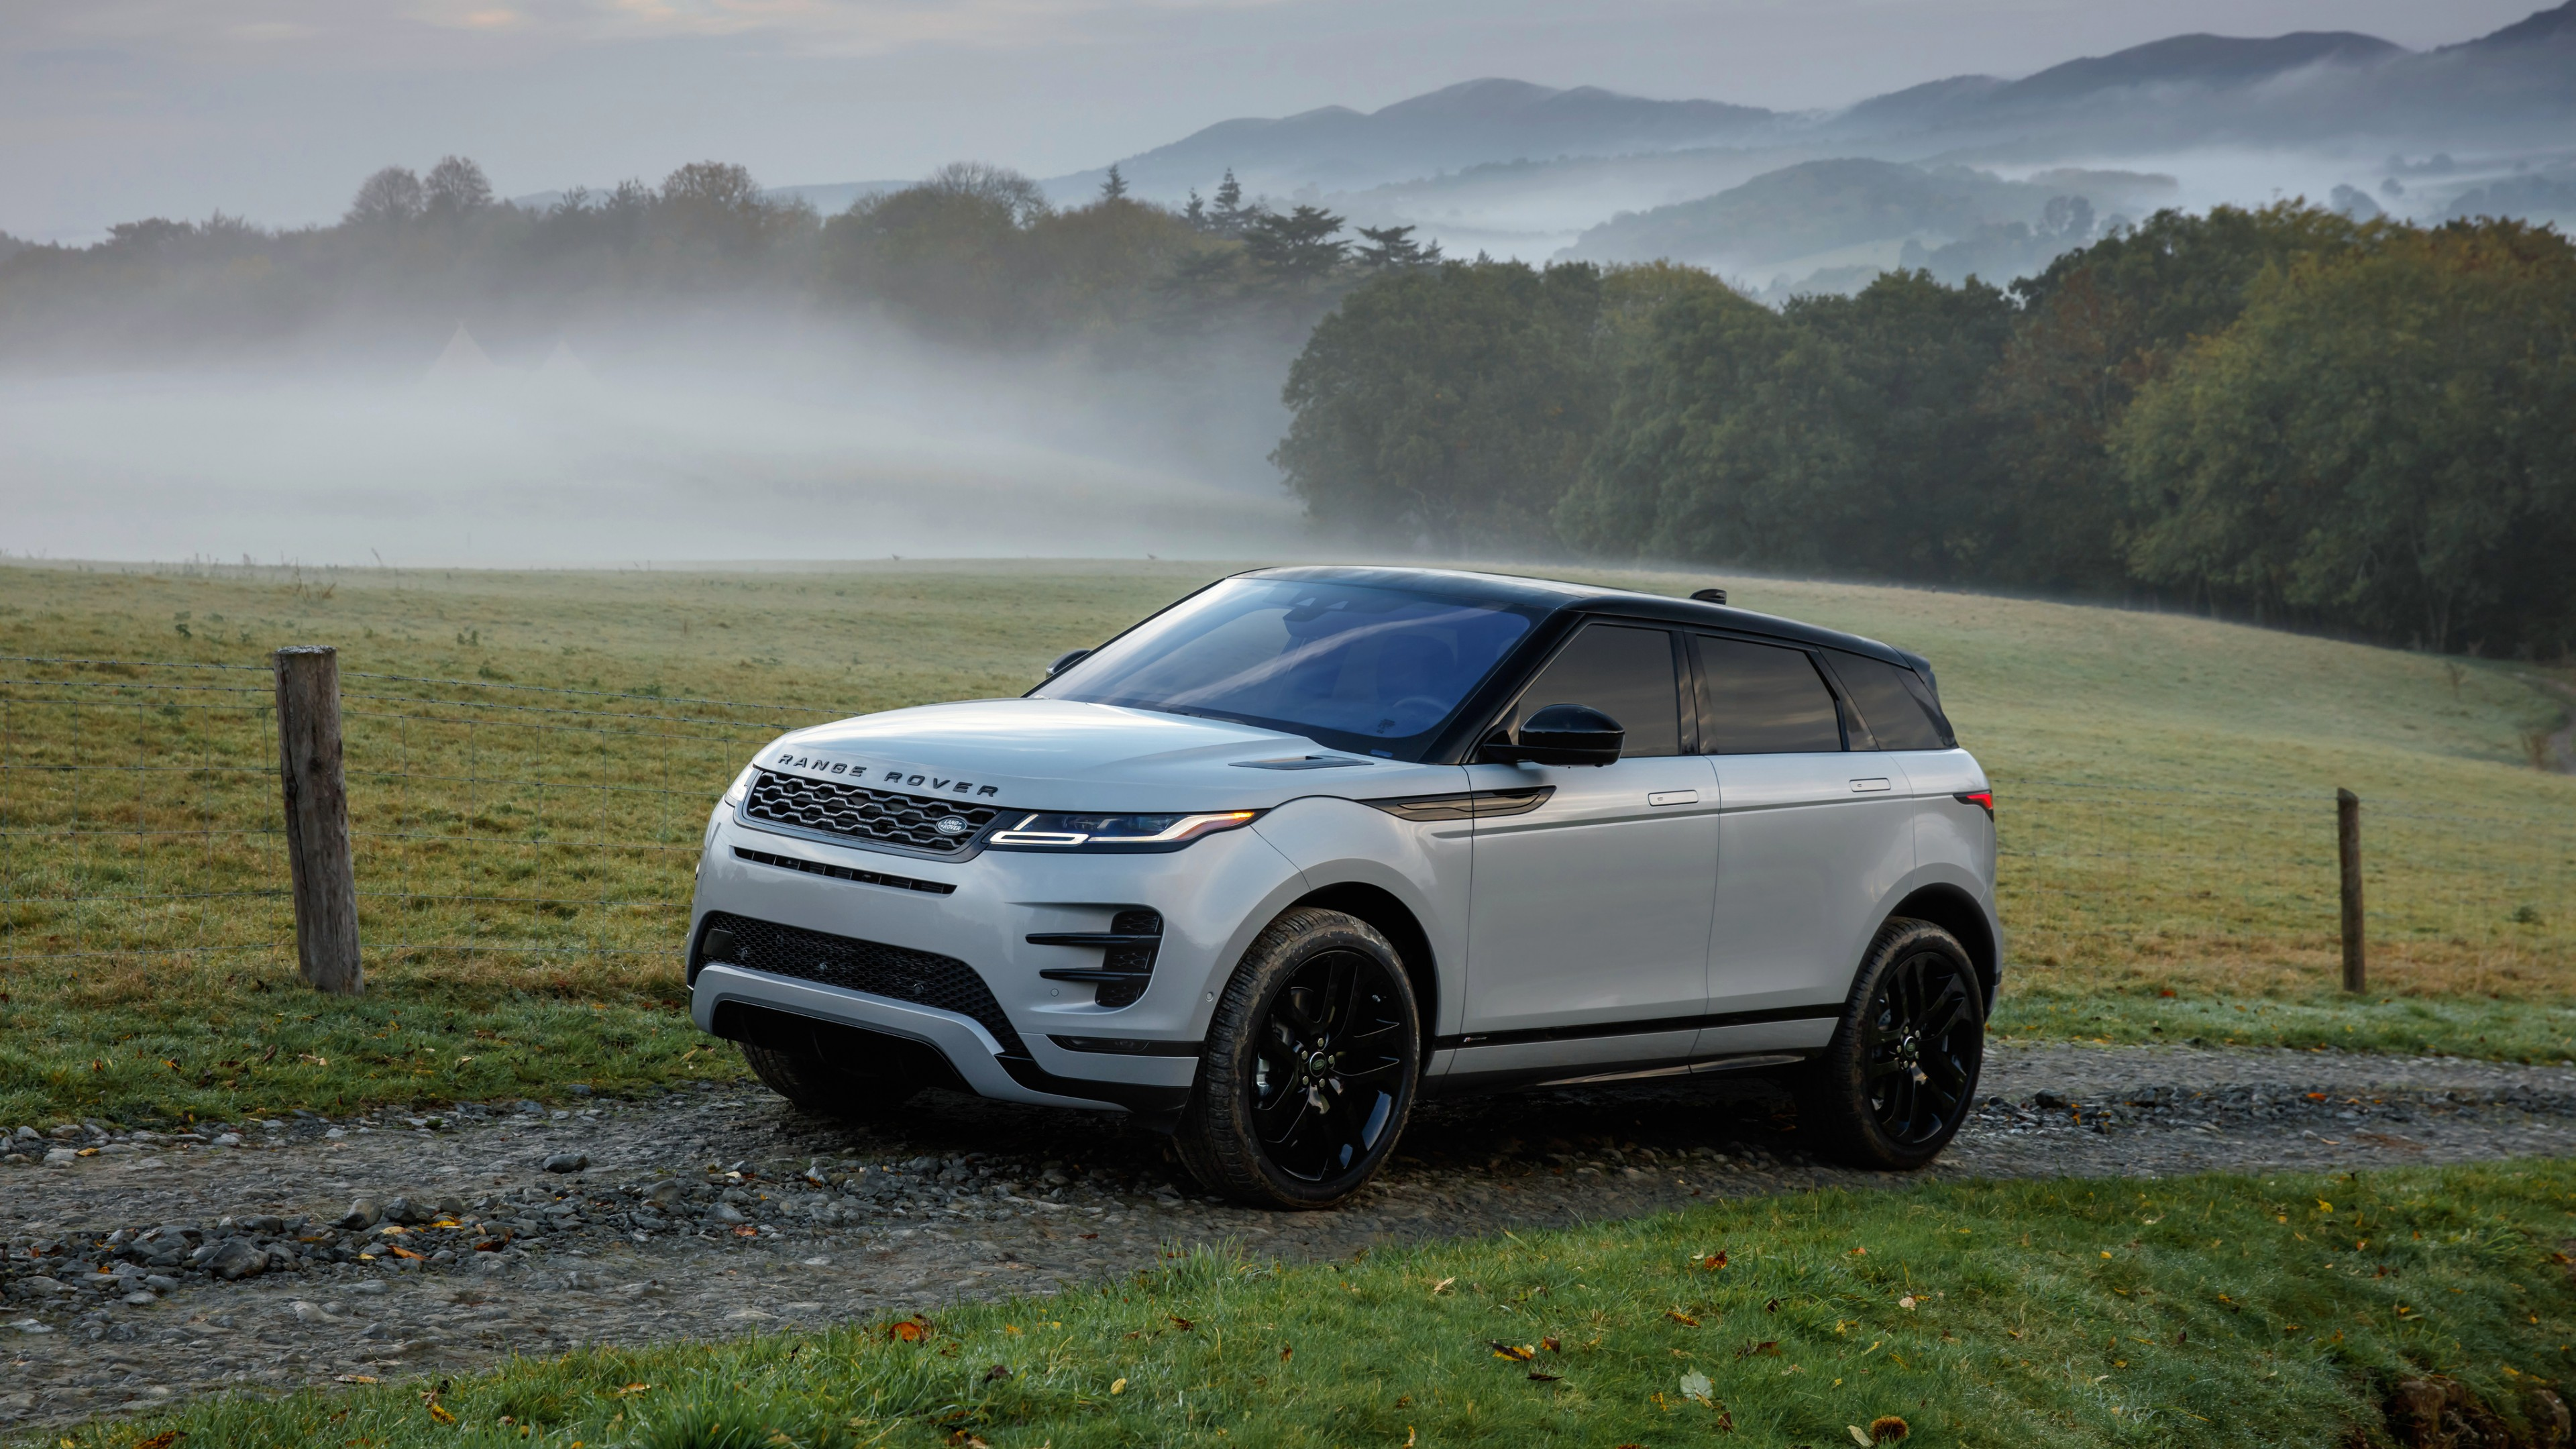 2020 Range Rover Evoque P300 Hse R Dynamic Black Pack 4k Wallpaper Hd Car Wallpapers Id 11585